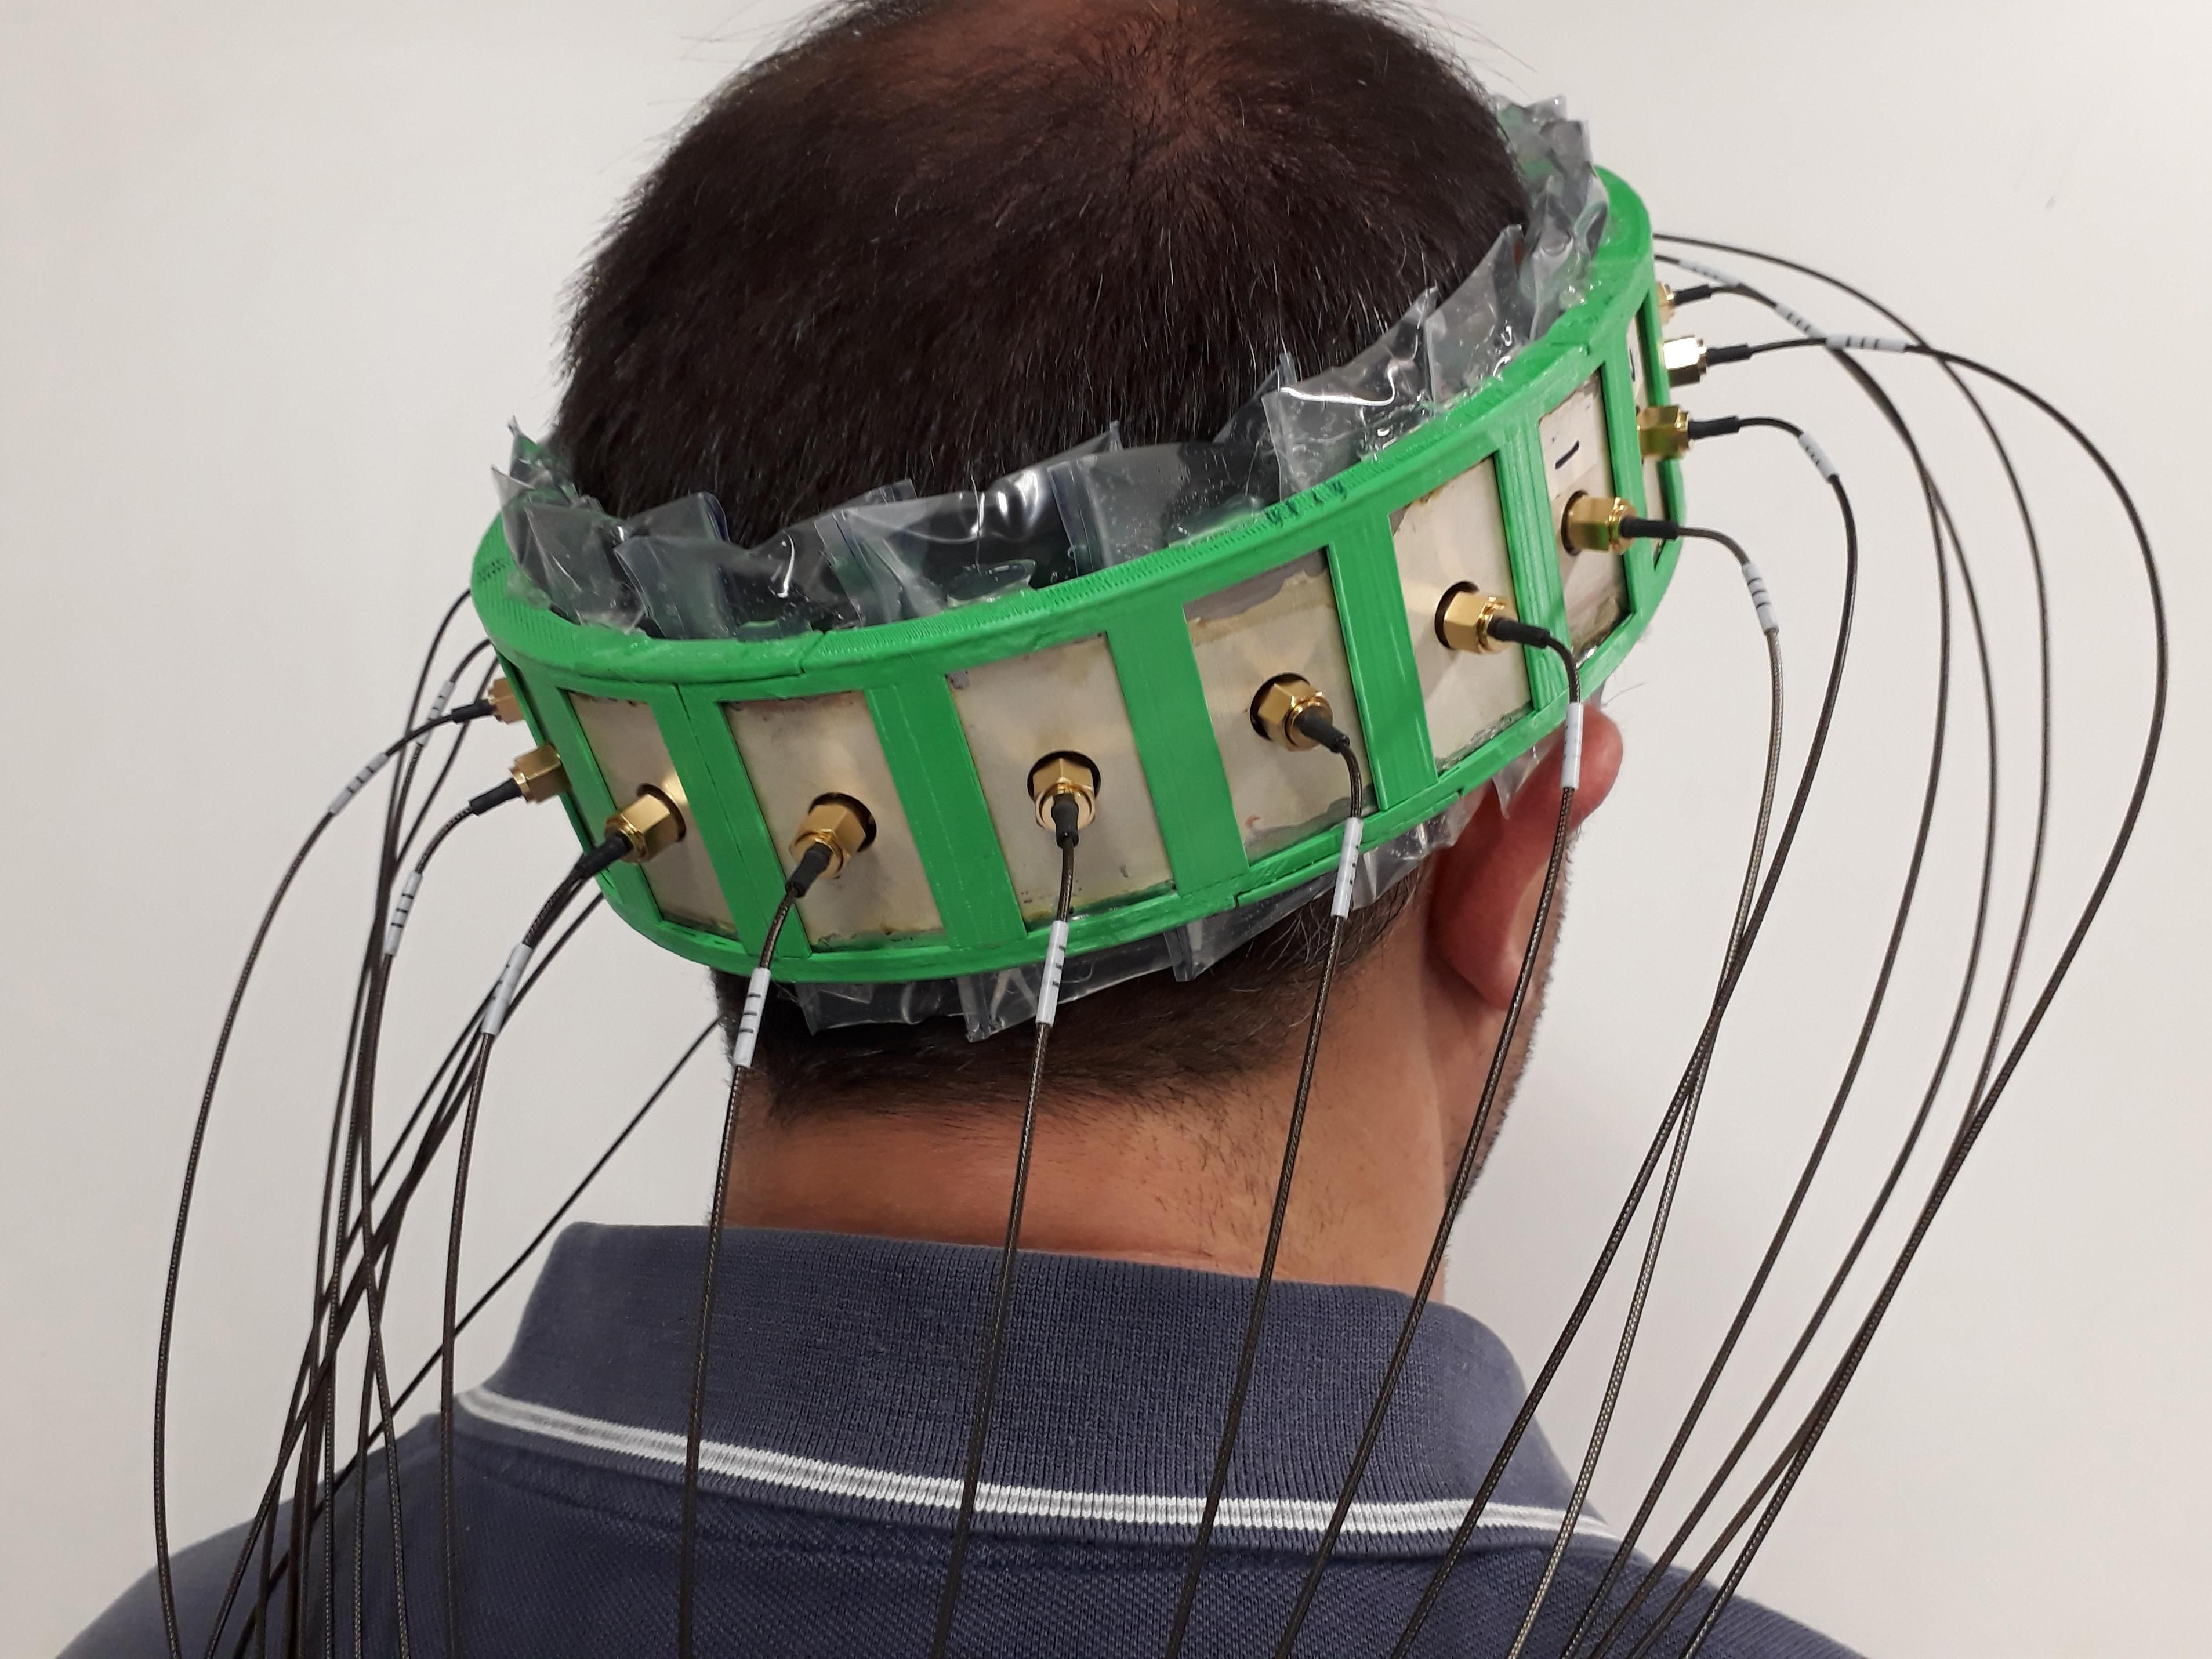 Back view of a man's head. A large green object encircles it, with wires coming out of white rectangular shapes across the surface.